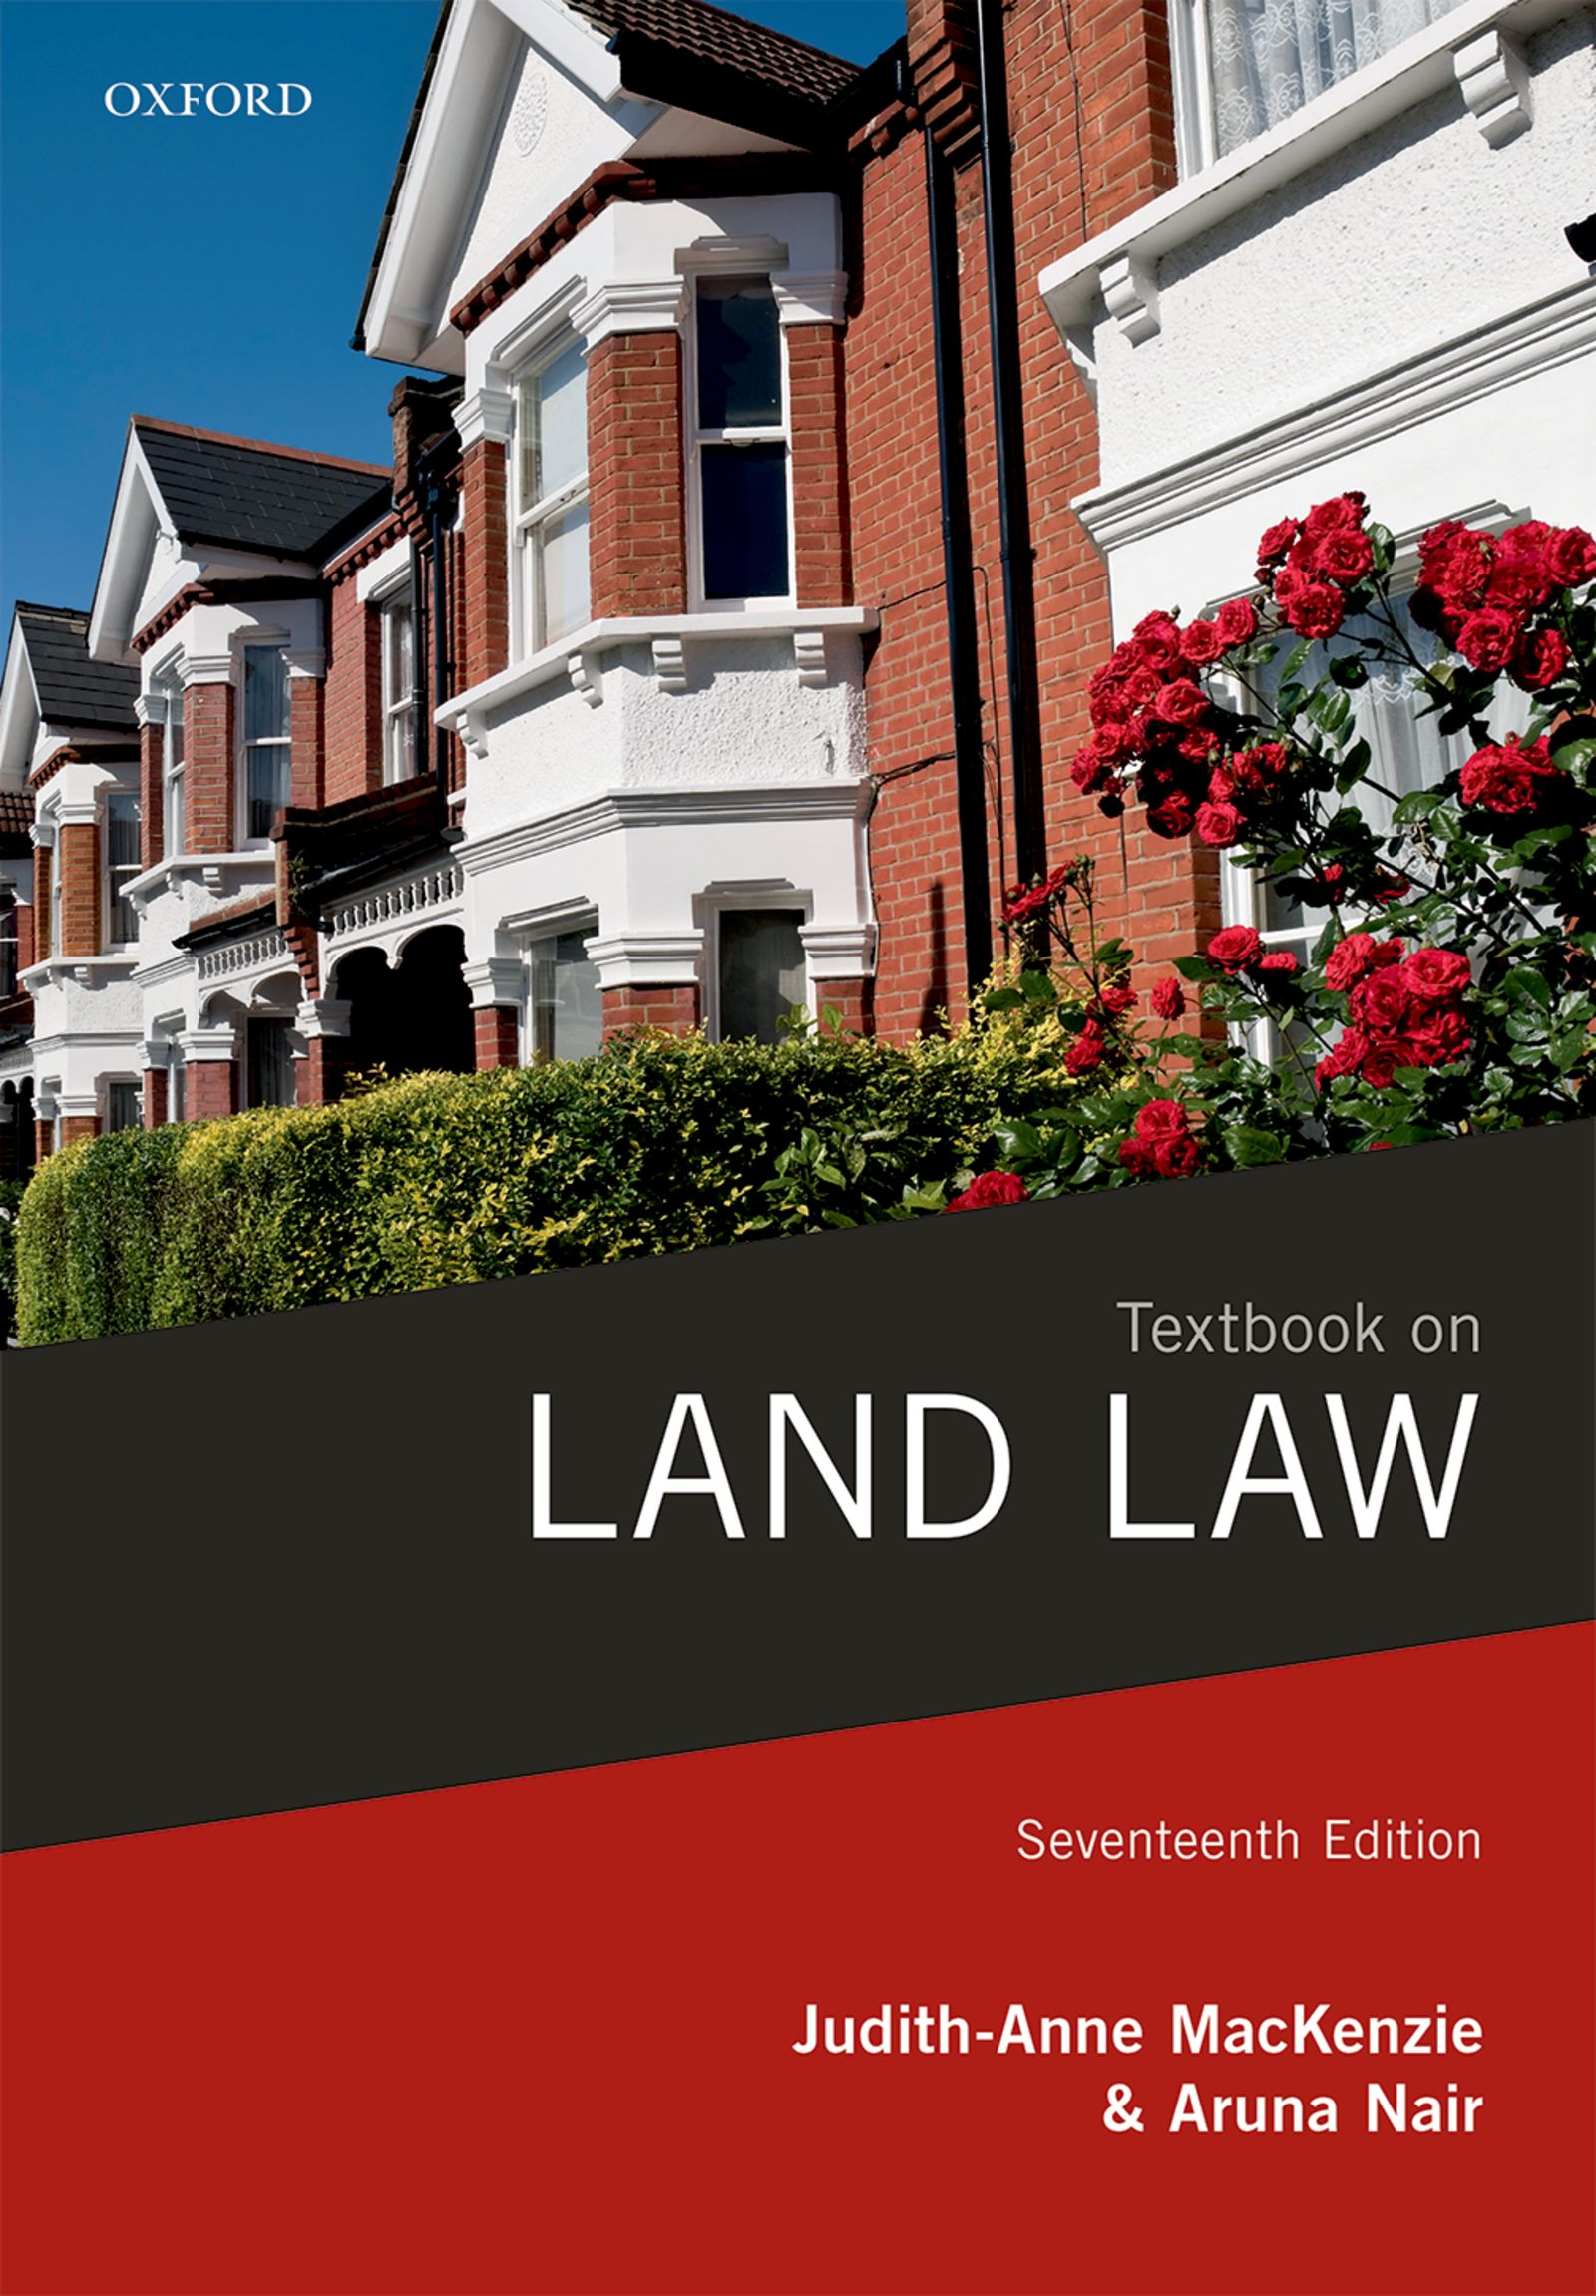 Textbook on Land Law 17e